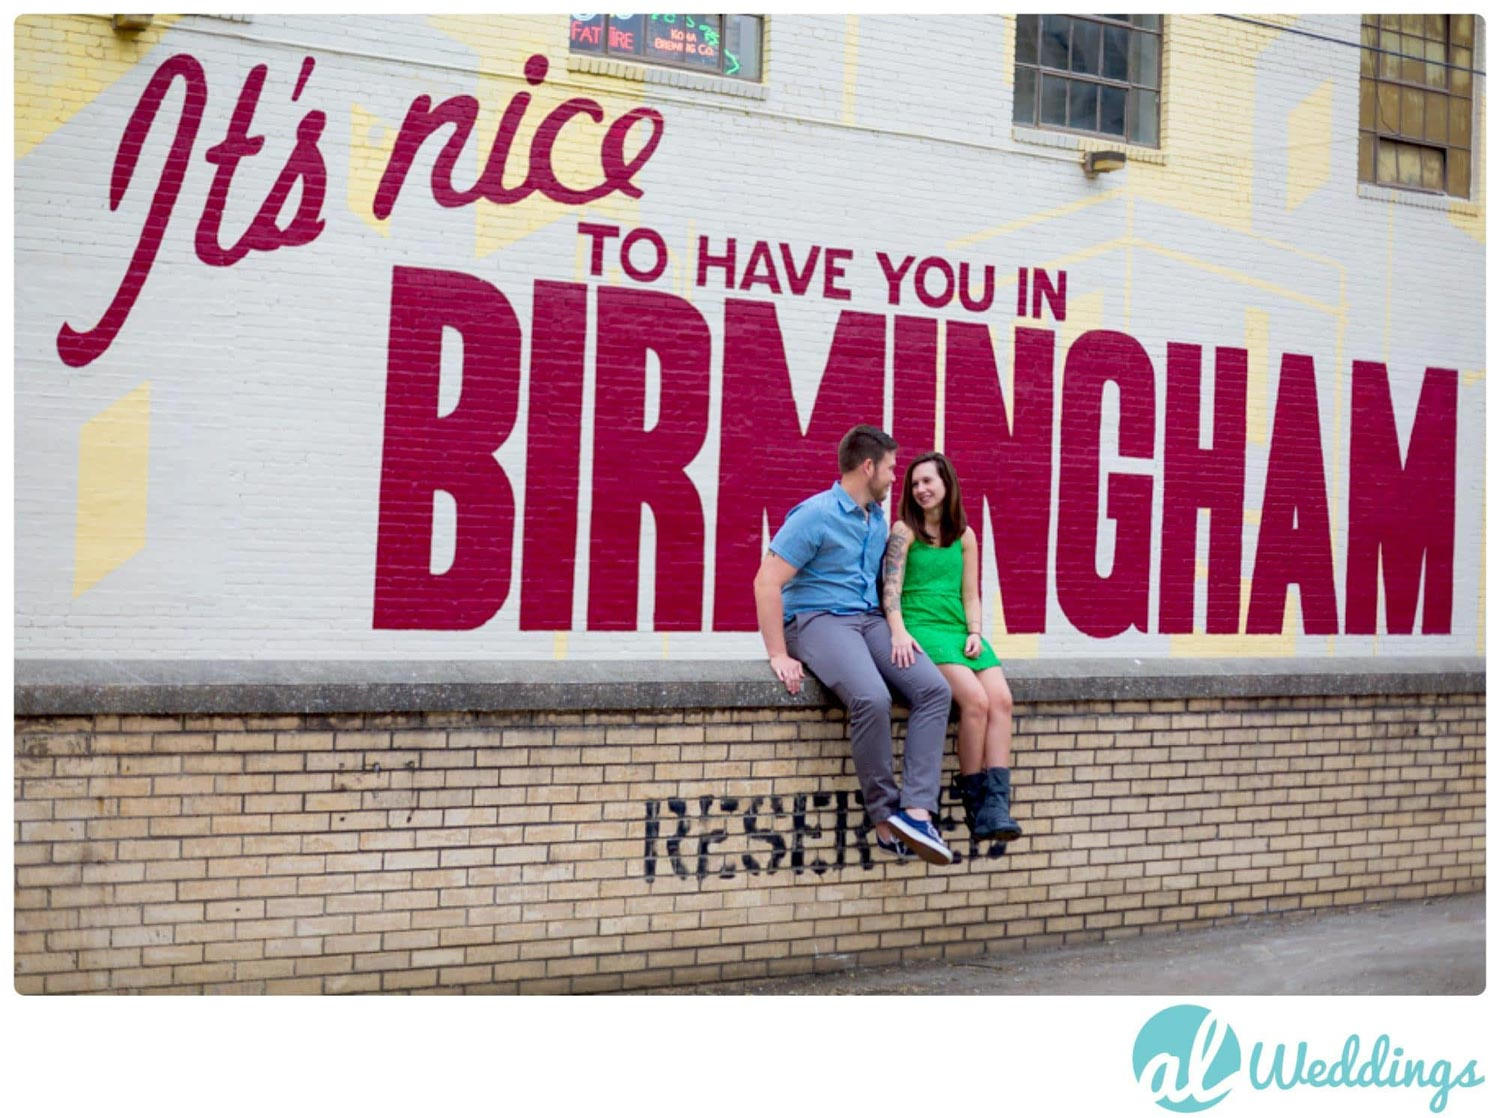 Birmingham,engagement,its nice to have you in birmingham,sign,